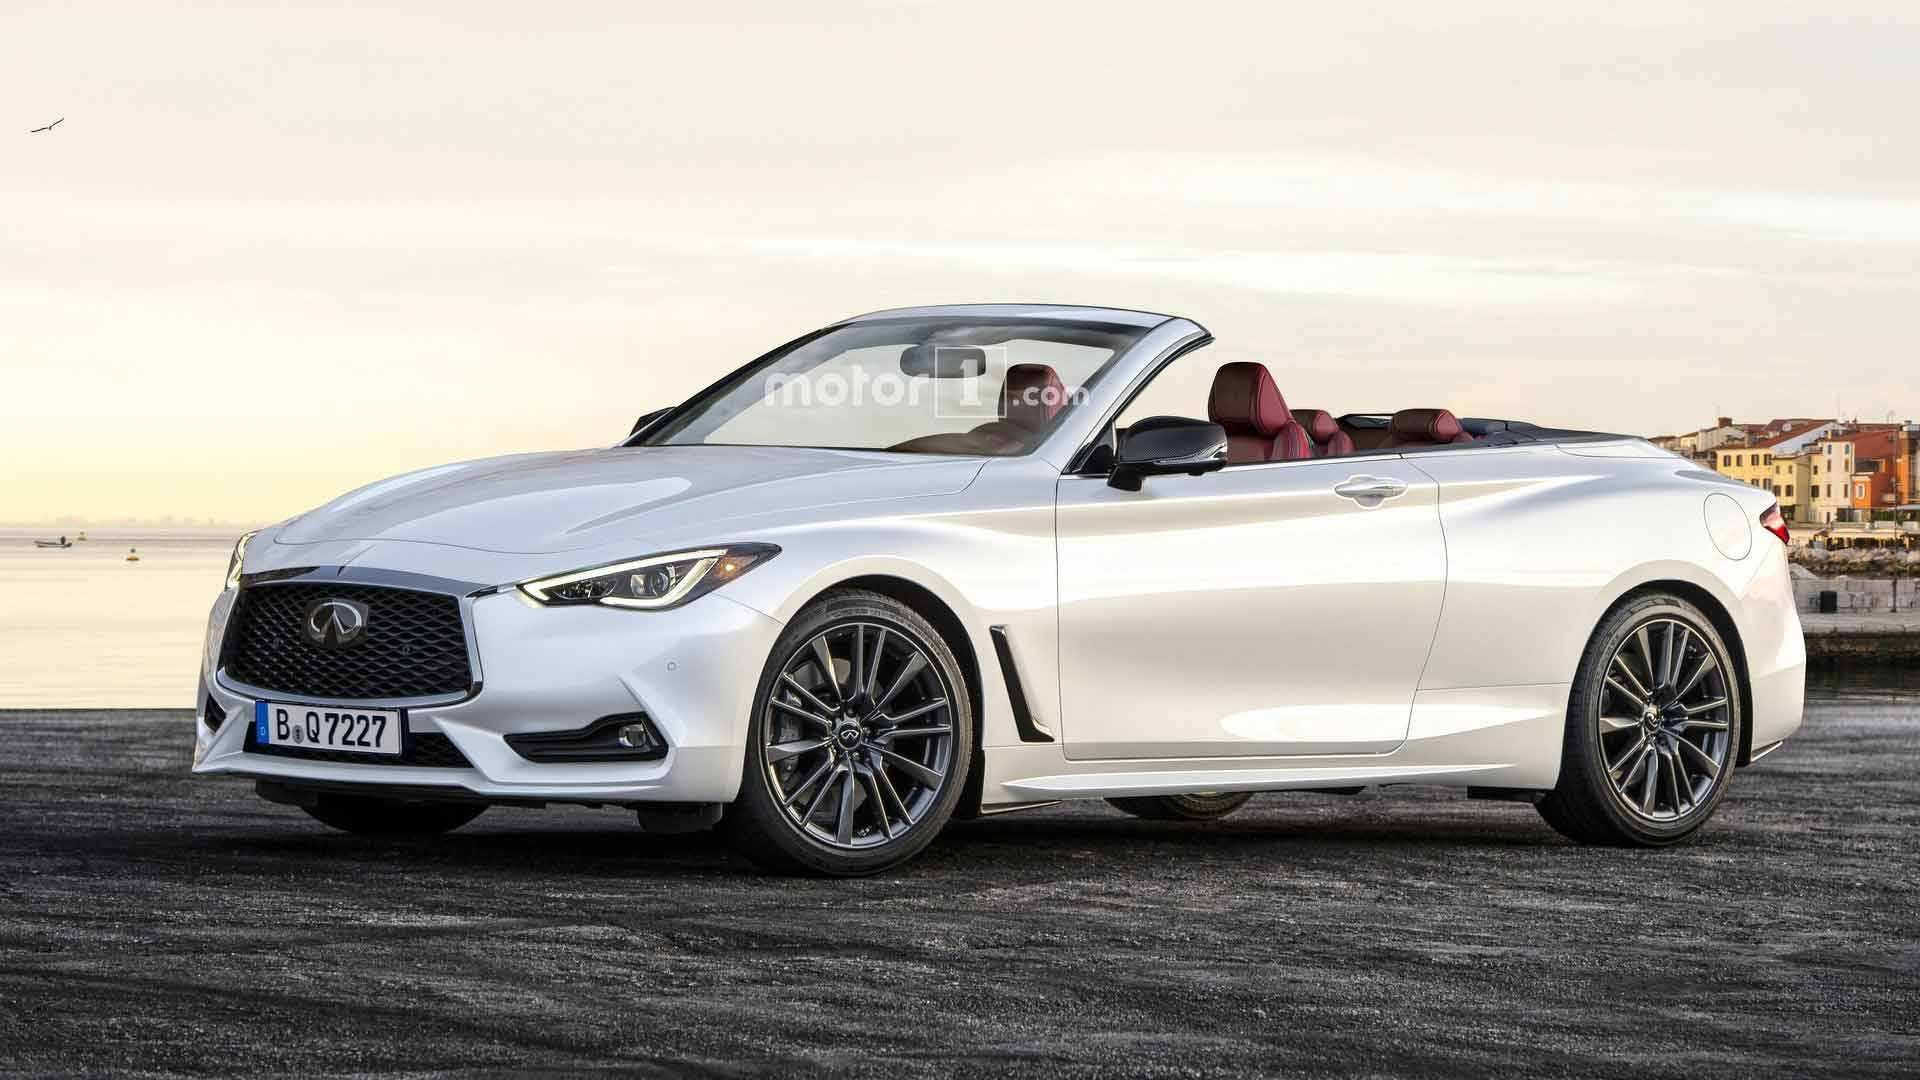 60 Concept of 2020 Infiniti Q60 Coupe Convertible Pictures for 2020 Infiniti Q60 Coupe Convertible